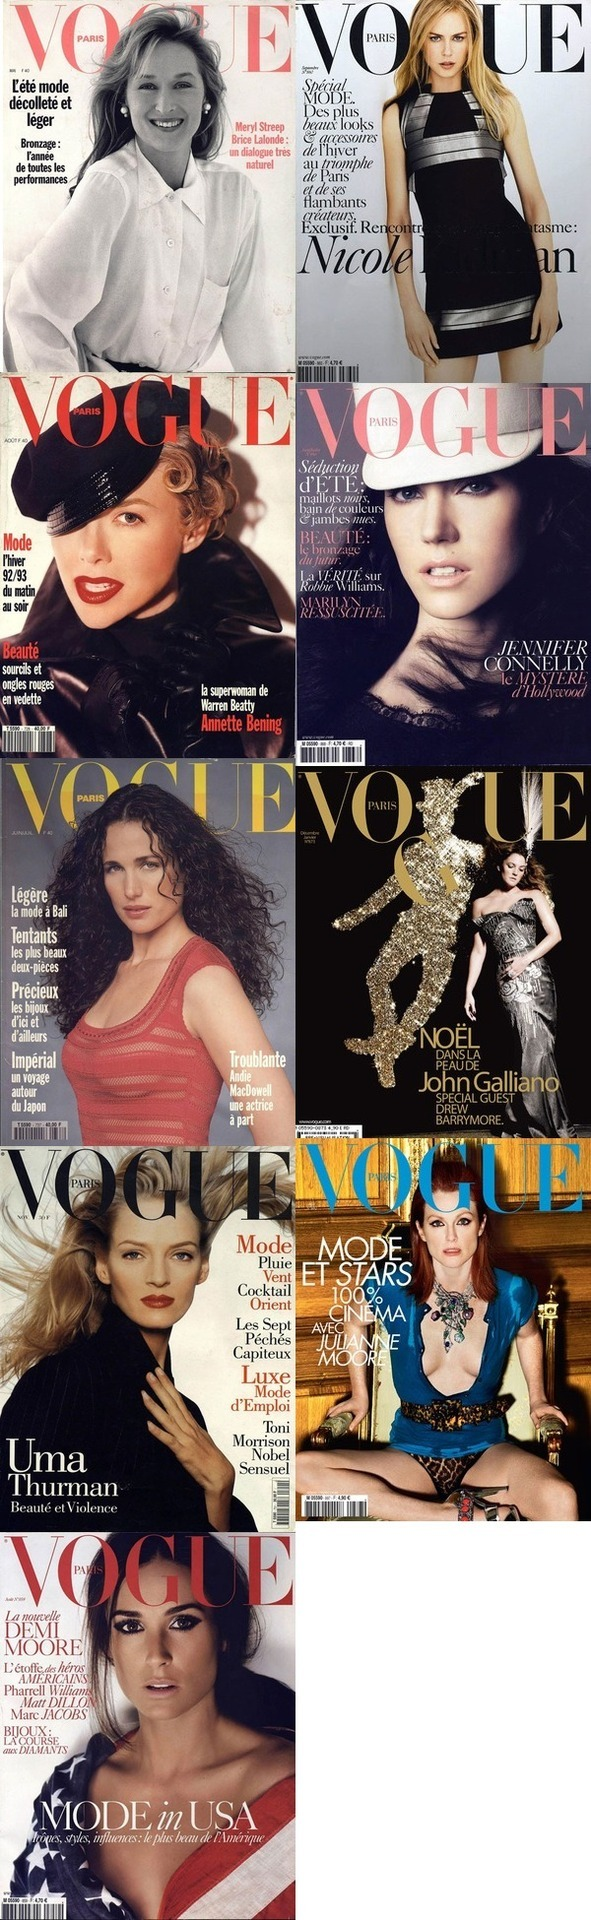 American screen stars on the cover of French Vogue- who shines?